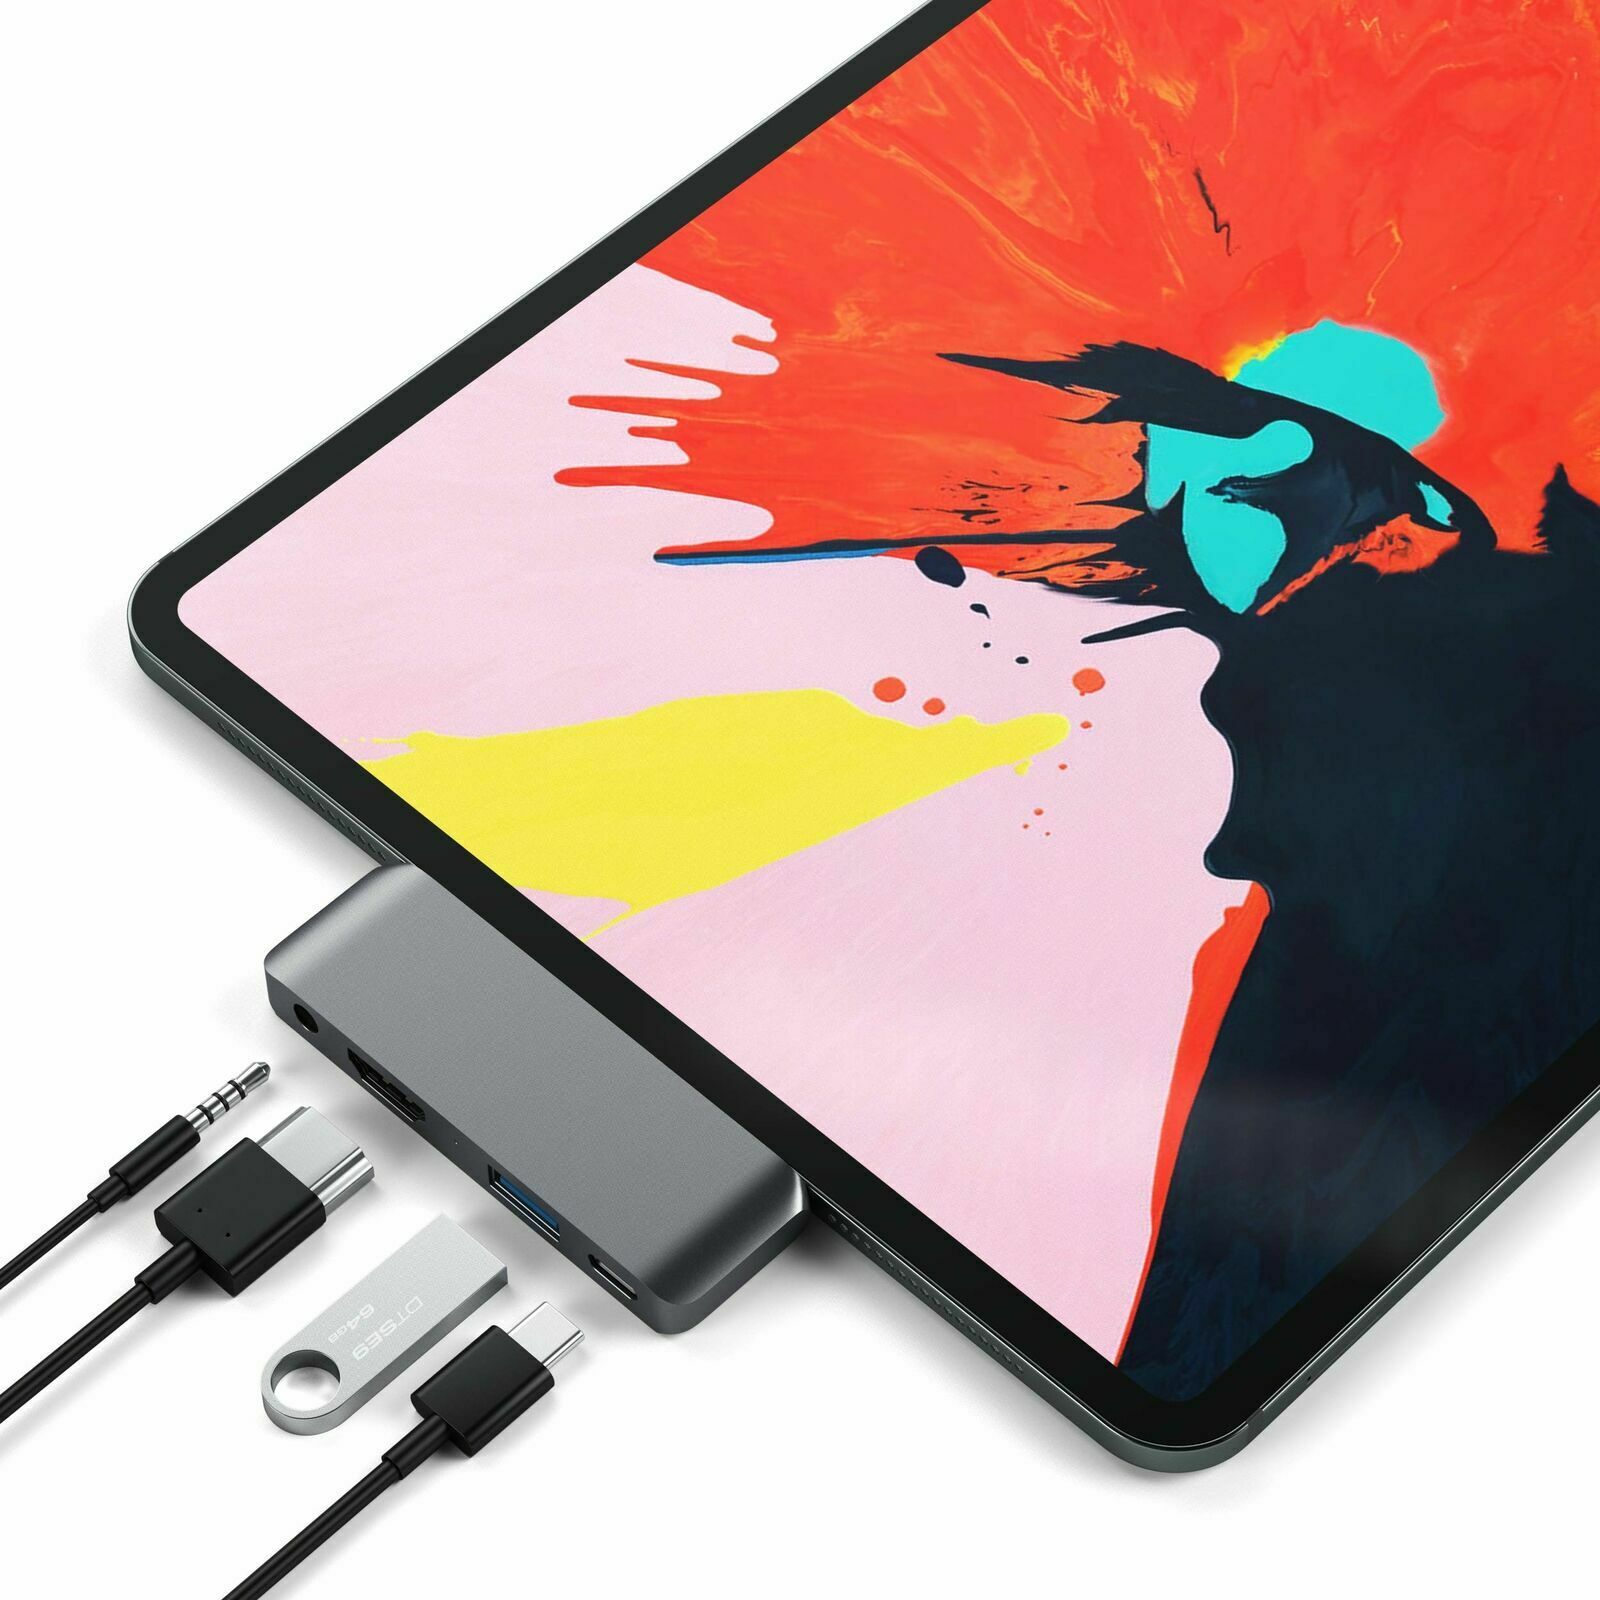 Satechi Aluminum Type-C Mobile Pro Hub Adapter With USB-C PD Charging 4K HDMI For IPad Pro Samsung